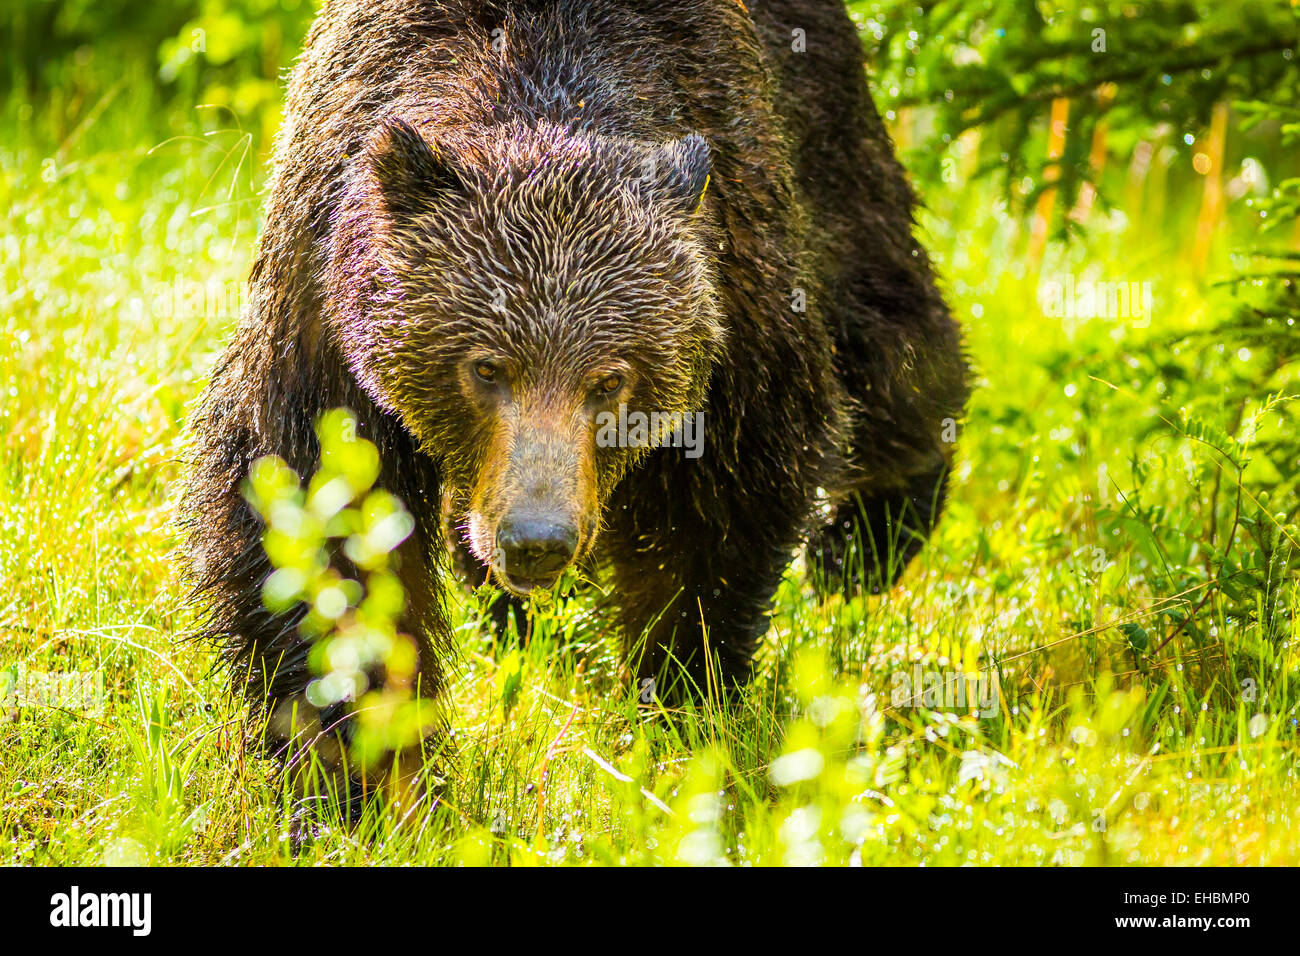 Grizzly bear walking - photo#33